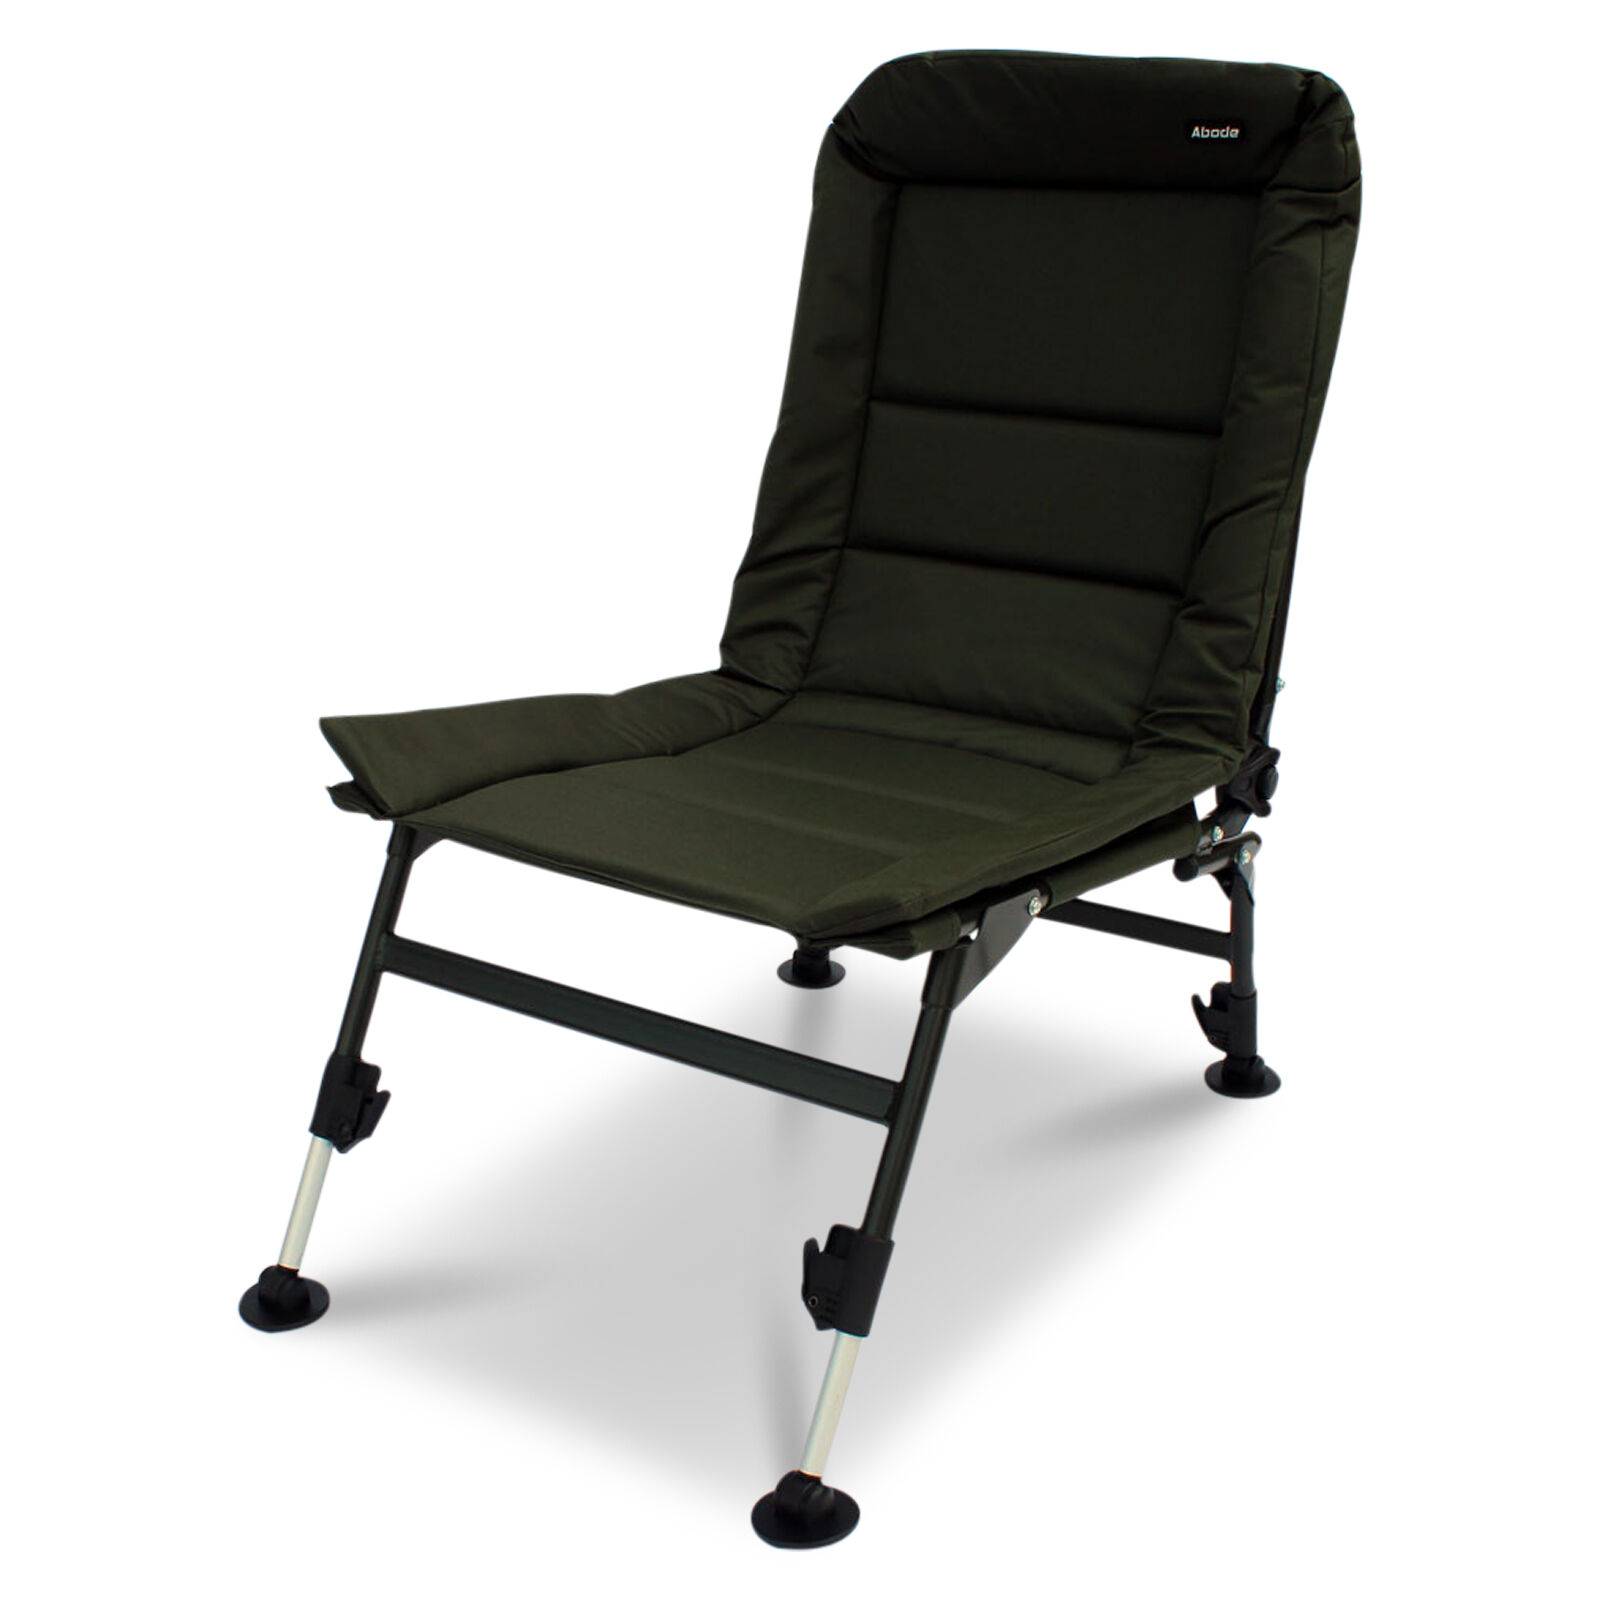 ABODE  Carp Fishing Camping Chair, Bed, Bedchair, Blanket & Pillow